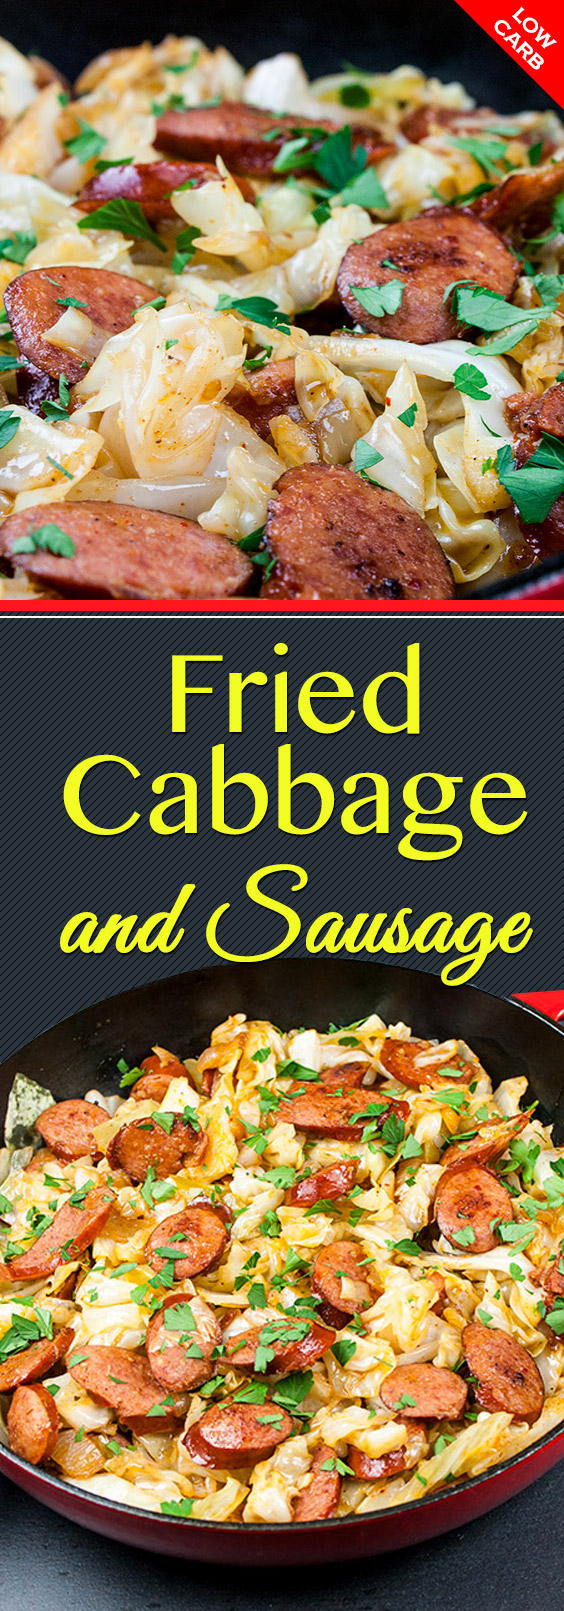 Fried Cabbage and Sausage - An easy low carb one pan meal ready in less than 30 minutes. A simple dish with few ingredients make shopping and cooking a breeze! #dinner #lowcarb